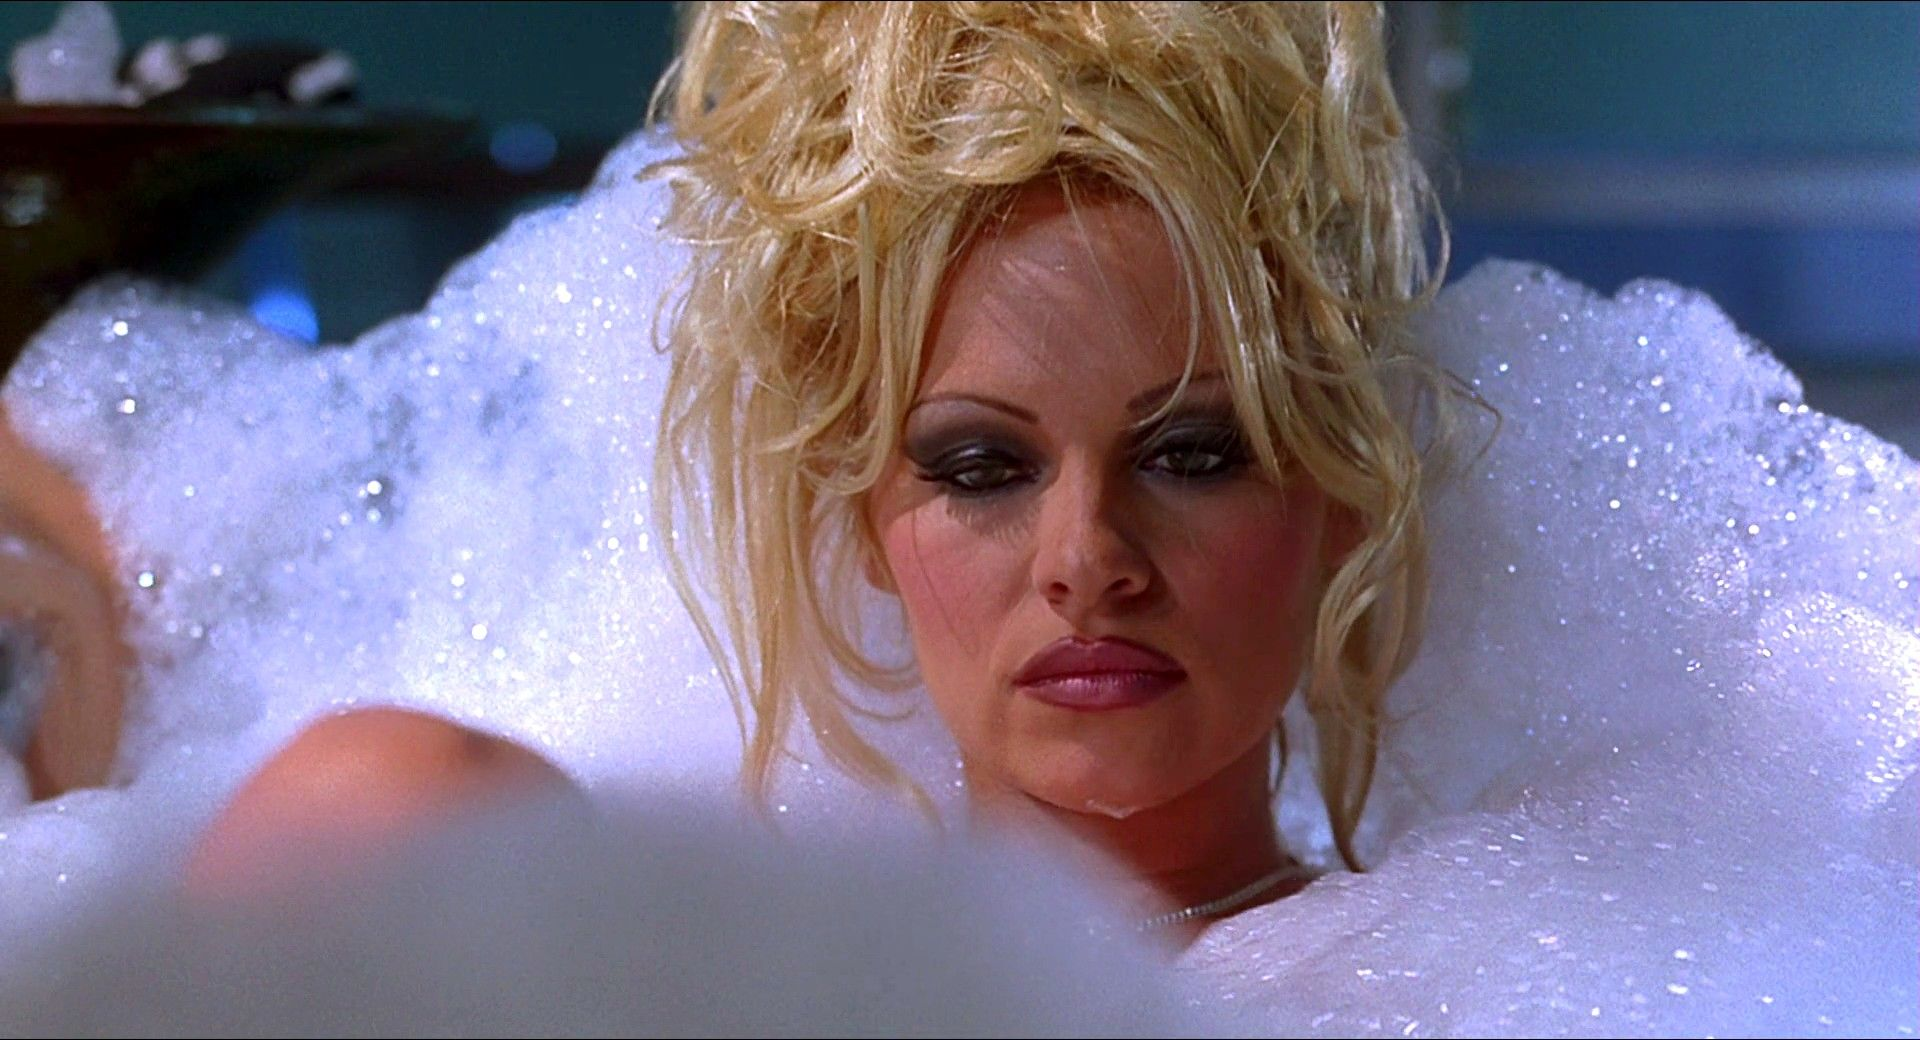 pam anderson barb wire | Pam Anderson | Pinterest